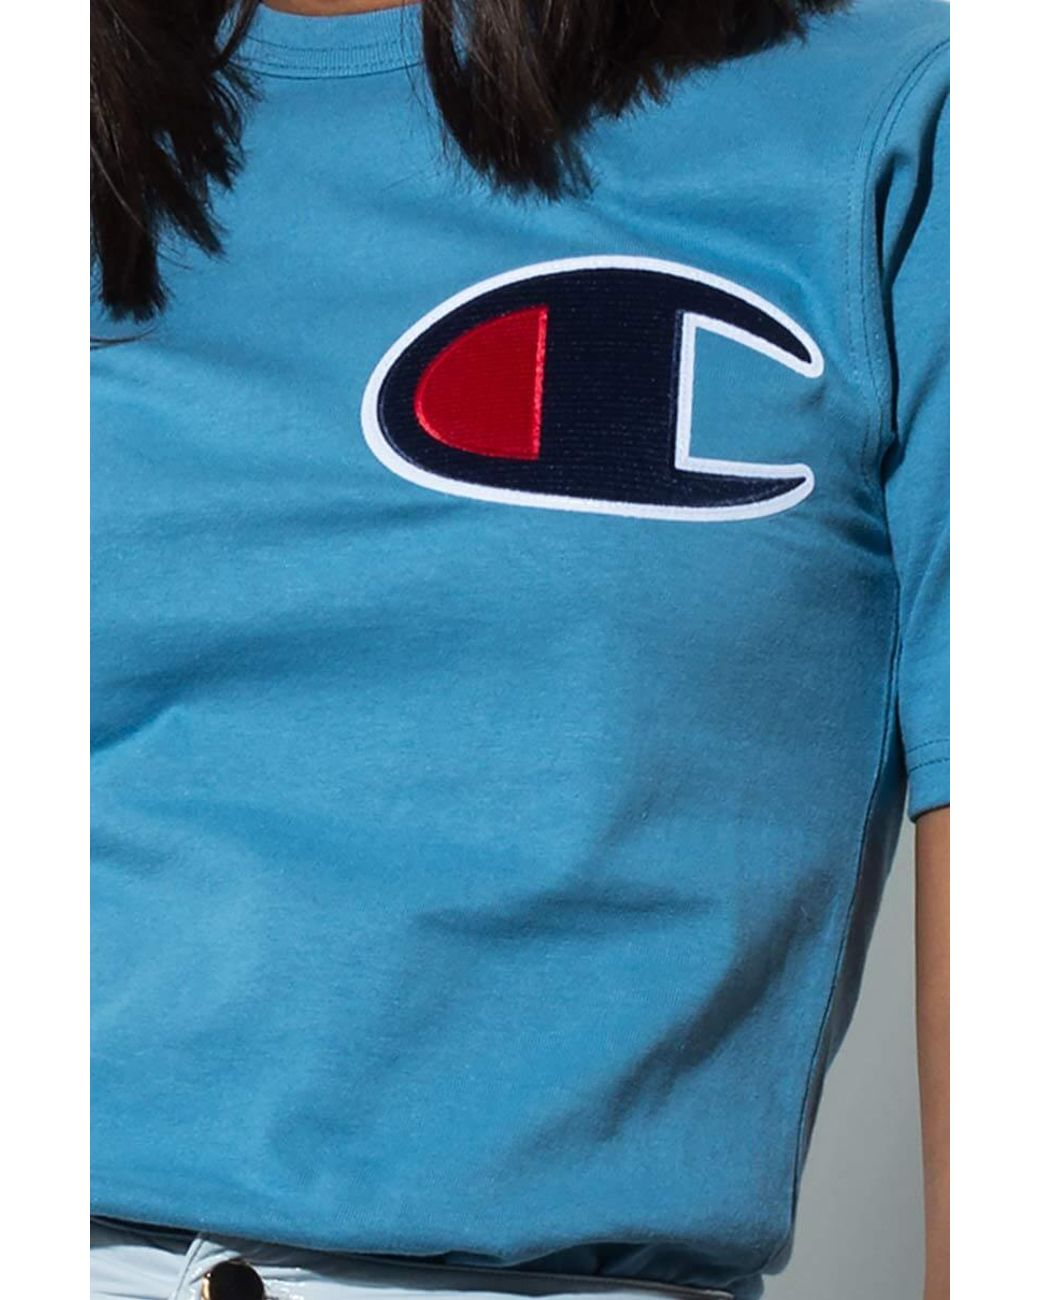 049d7eba Champion Big C Patch Heritage Tee in Blue - Lyst